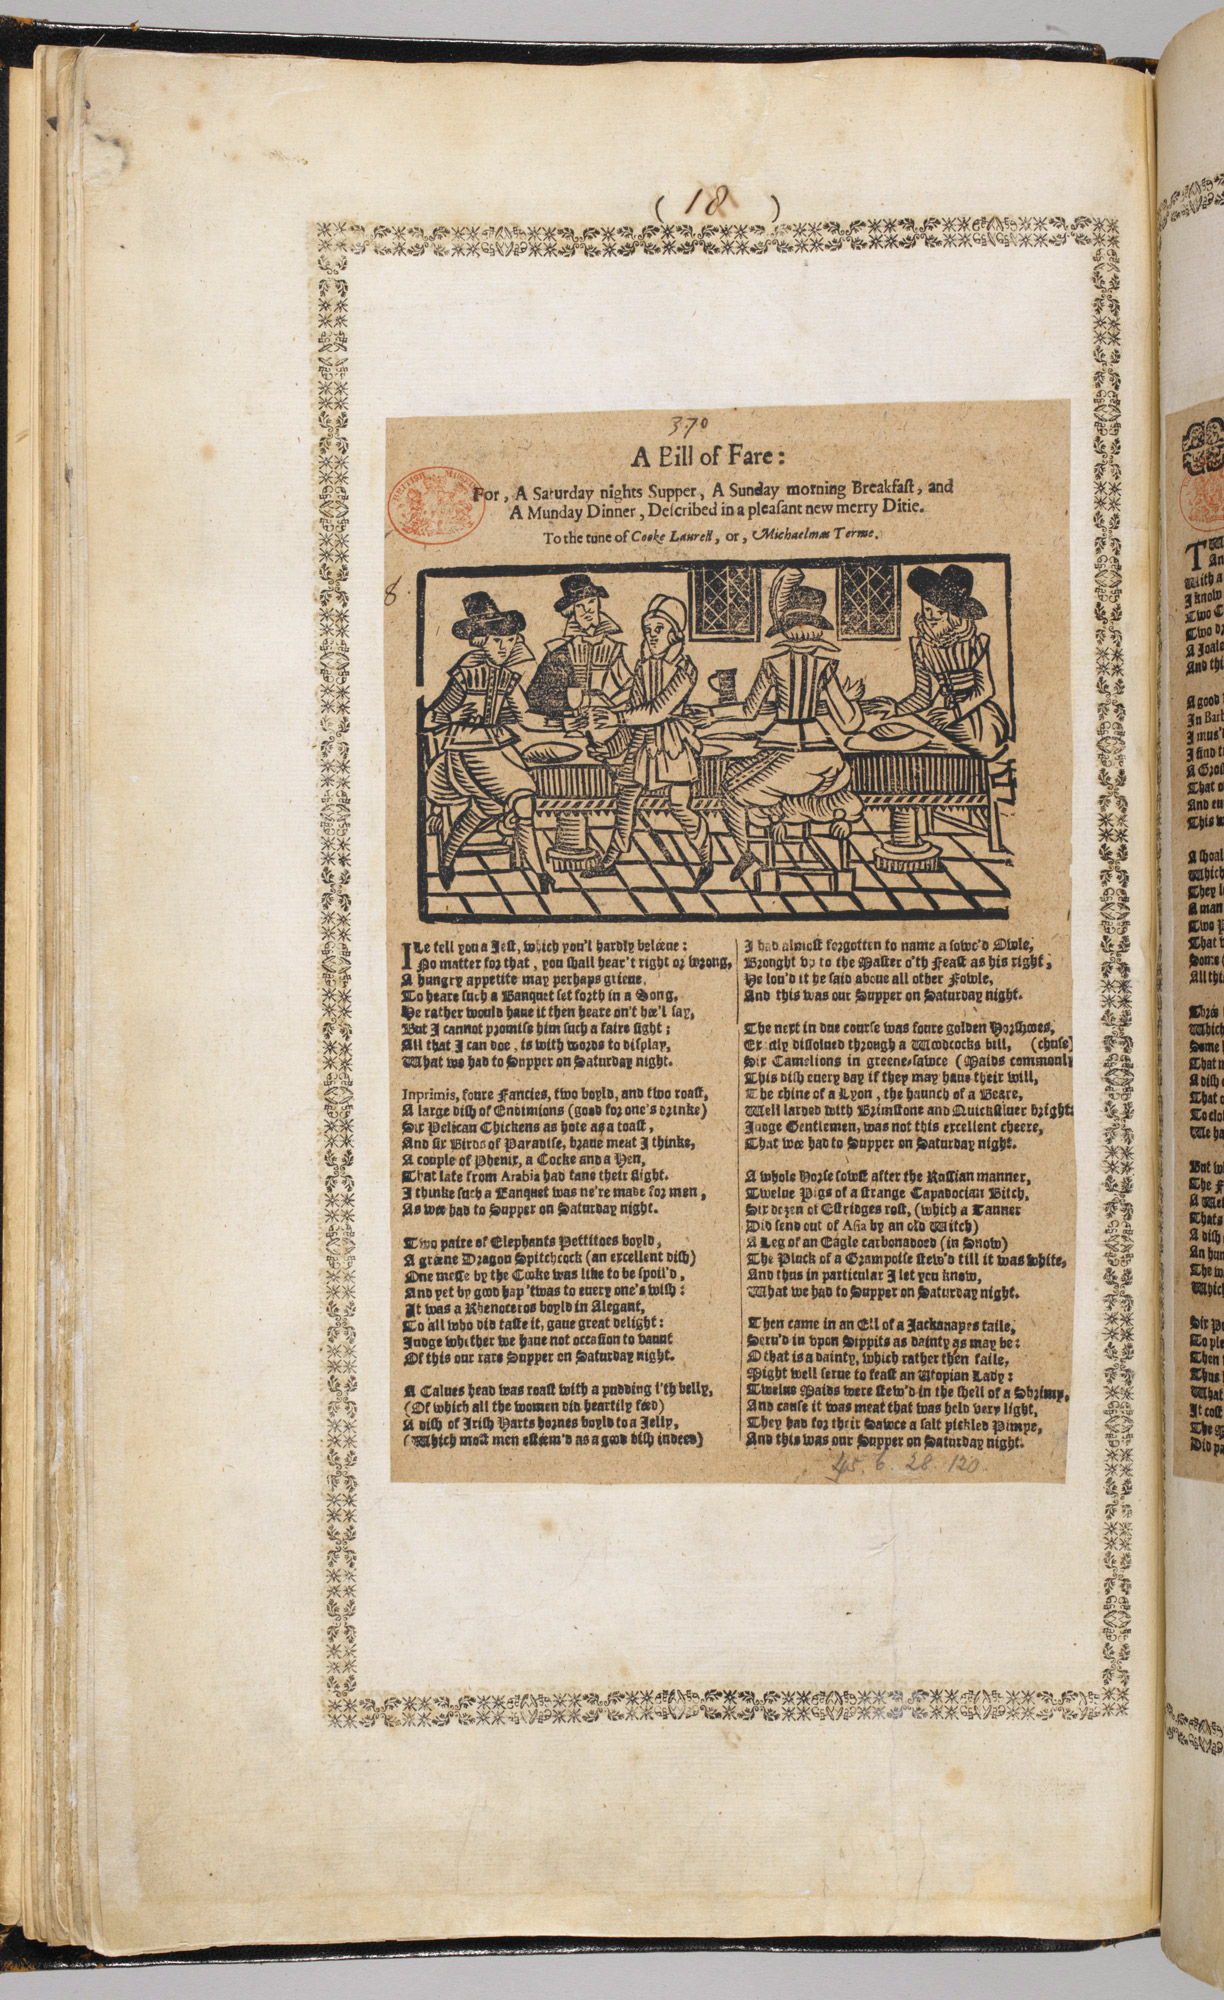 Broadside Ballad 'A Bill of Fare'